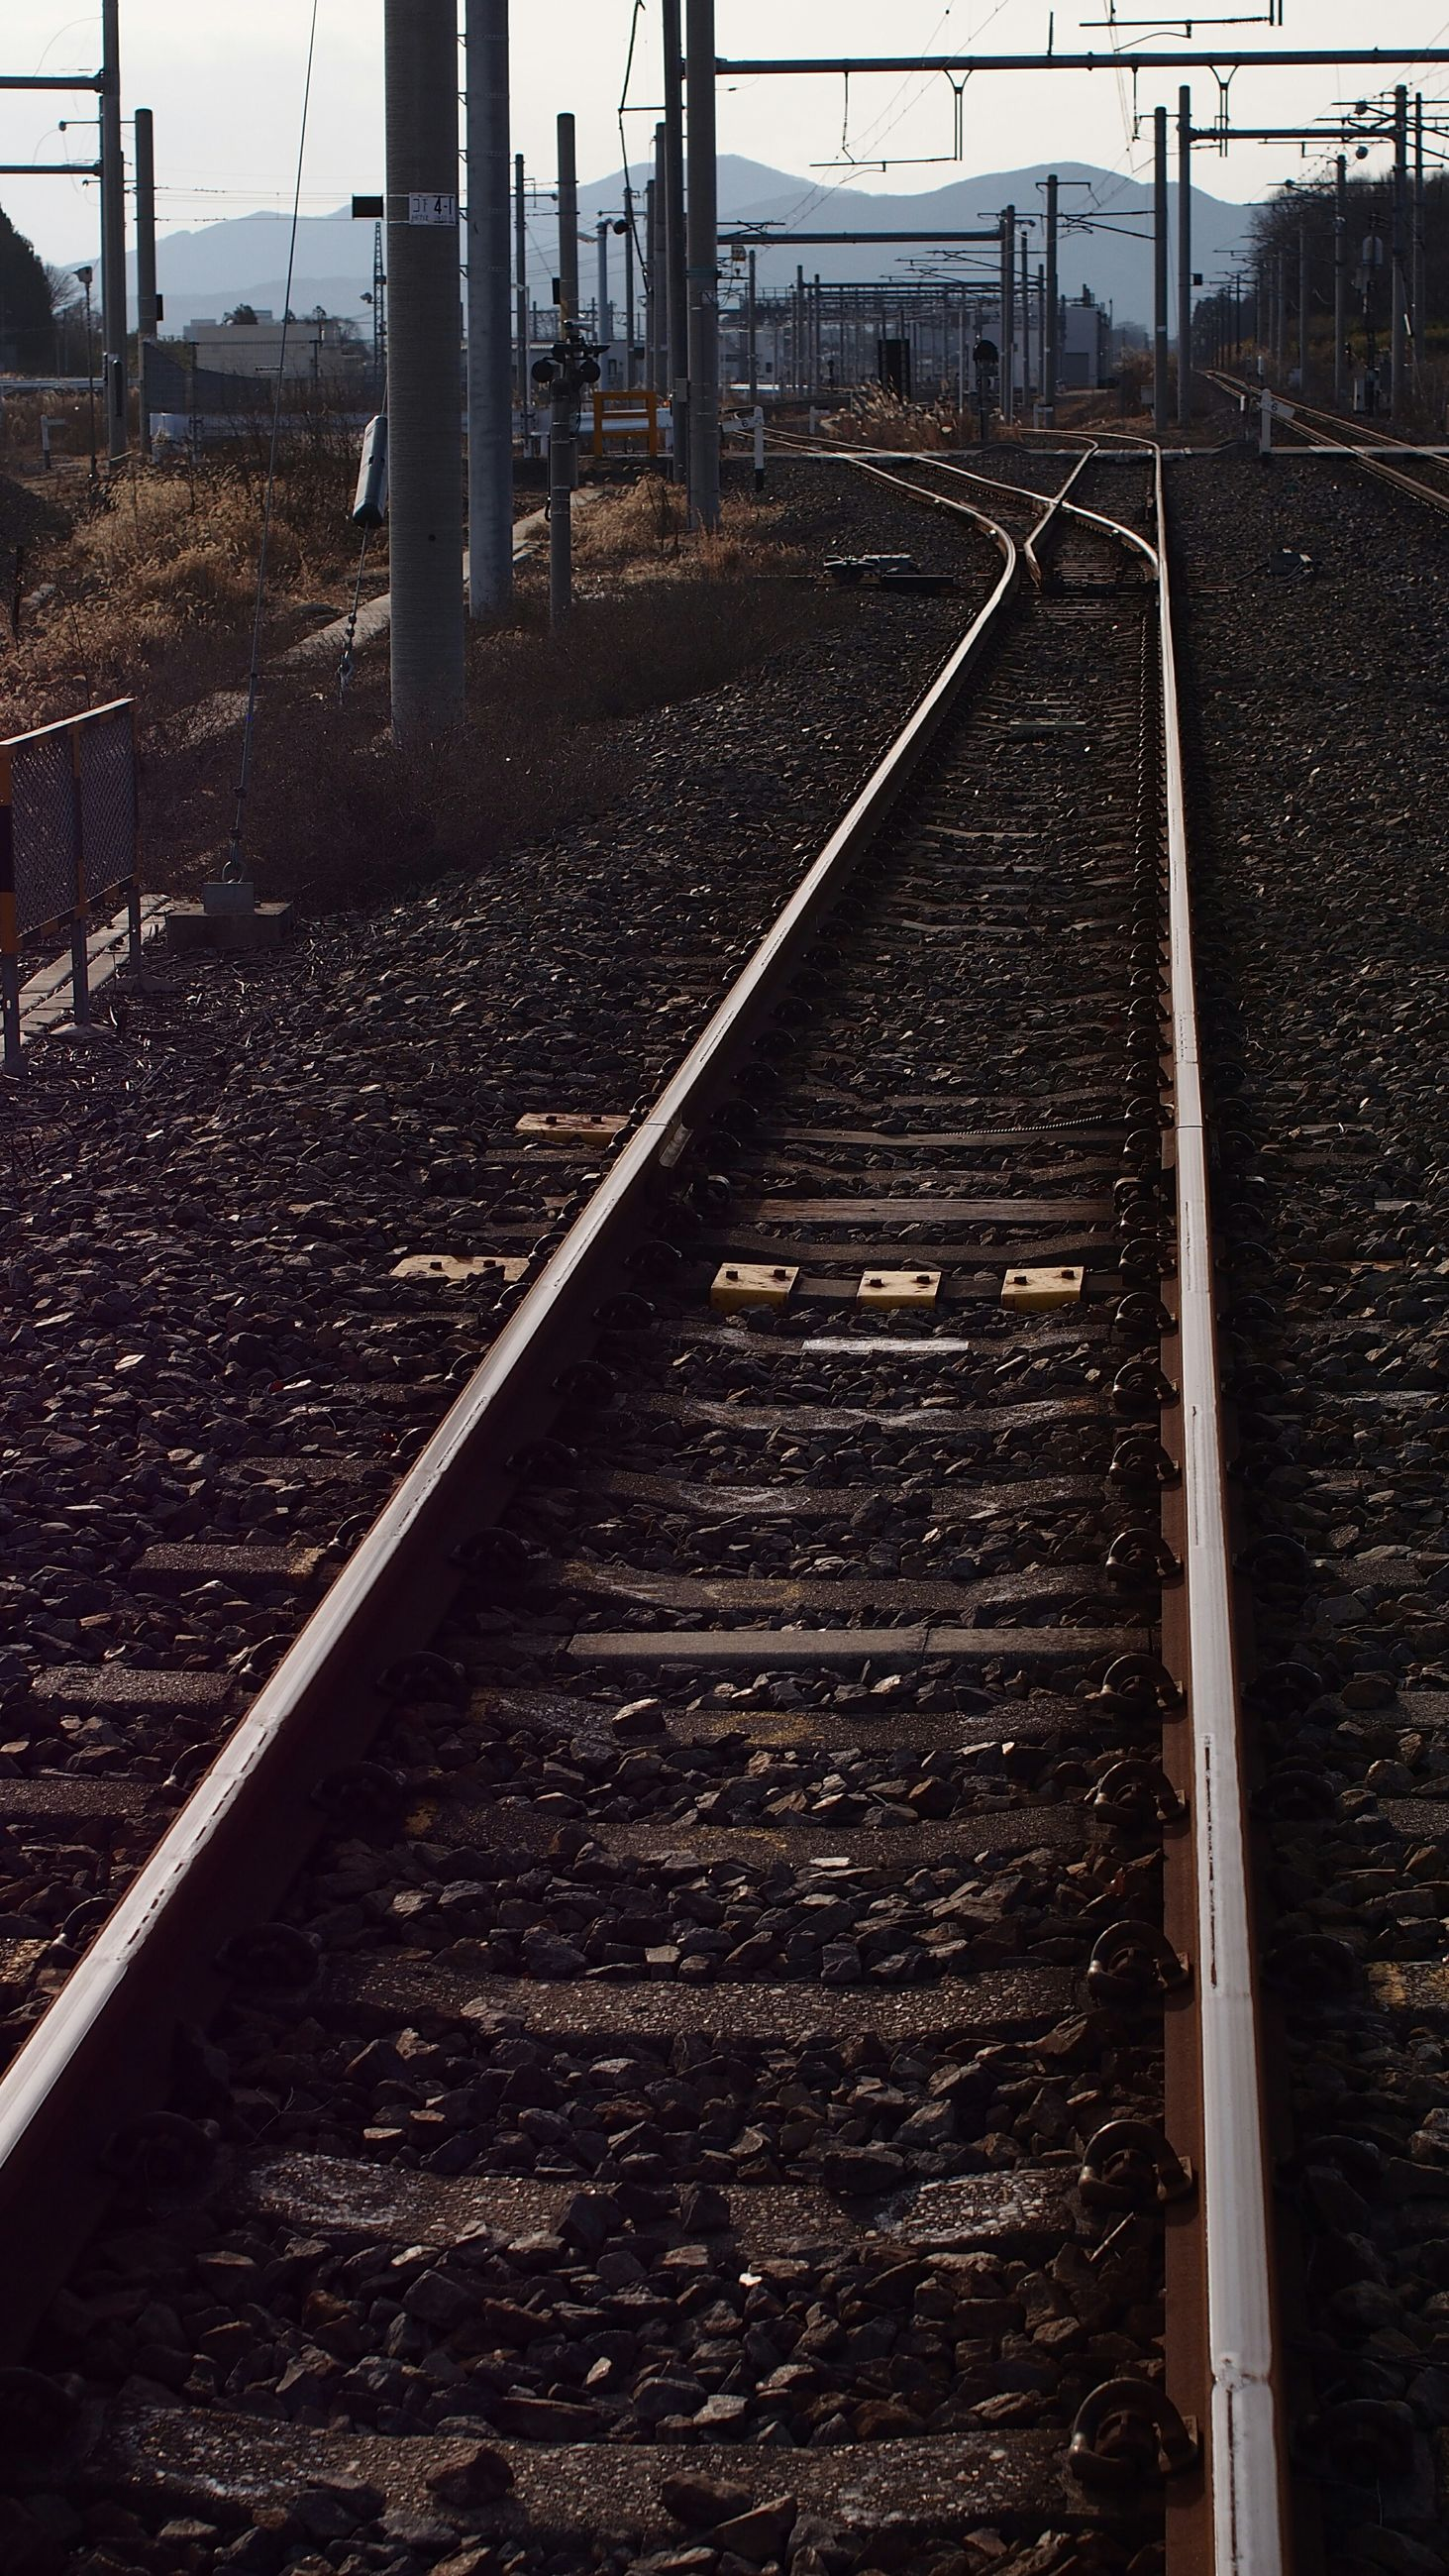 railroad track, the way forward, rail transportation, diminishing perspective, vanishing point, transportation, built structure, architecture, railway track, surface level, public transportation, straight, long, metal, sky, connection, day, railroad station platform, building exterior, no people